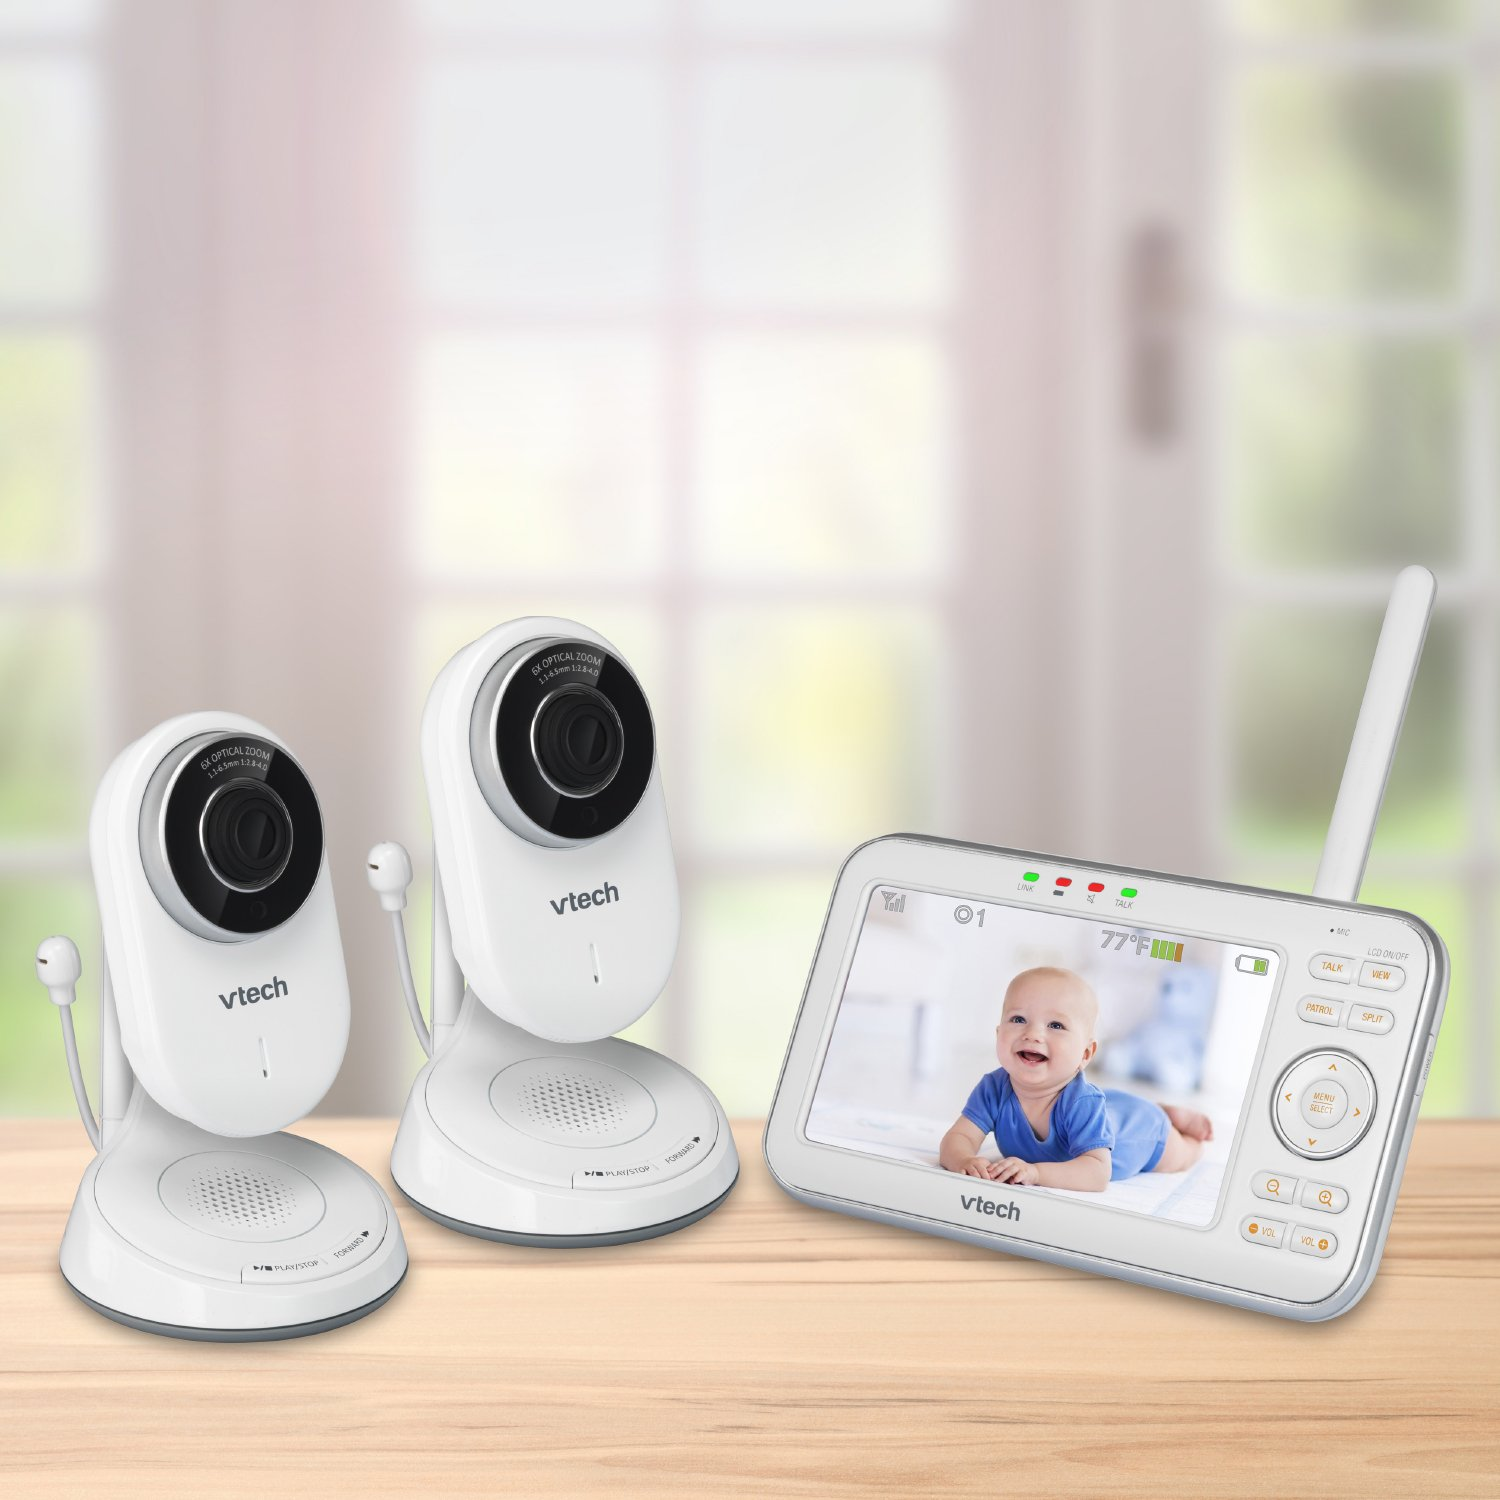 VTech VM5271-2 Video Baby Monitor with 5-inch Screen, Motorized Lens with 6x Optical Zoom, Soothing Sounds & Lullabies, Temperature Sensor & 1,000 feet of Range with 2 Cameras by VTech (Image #2)